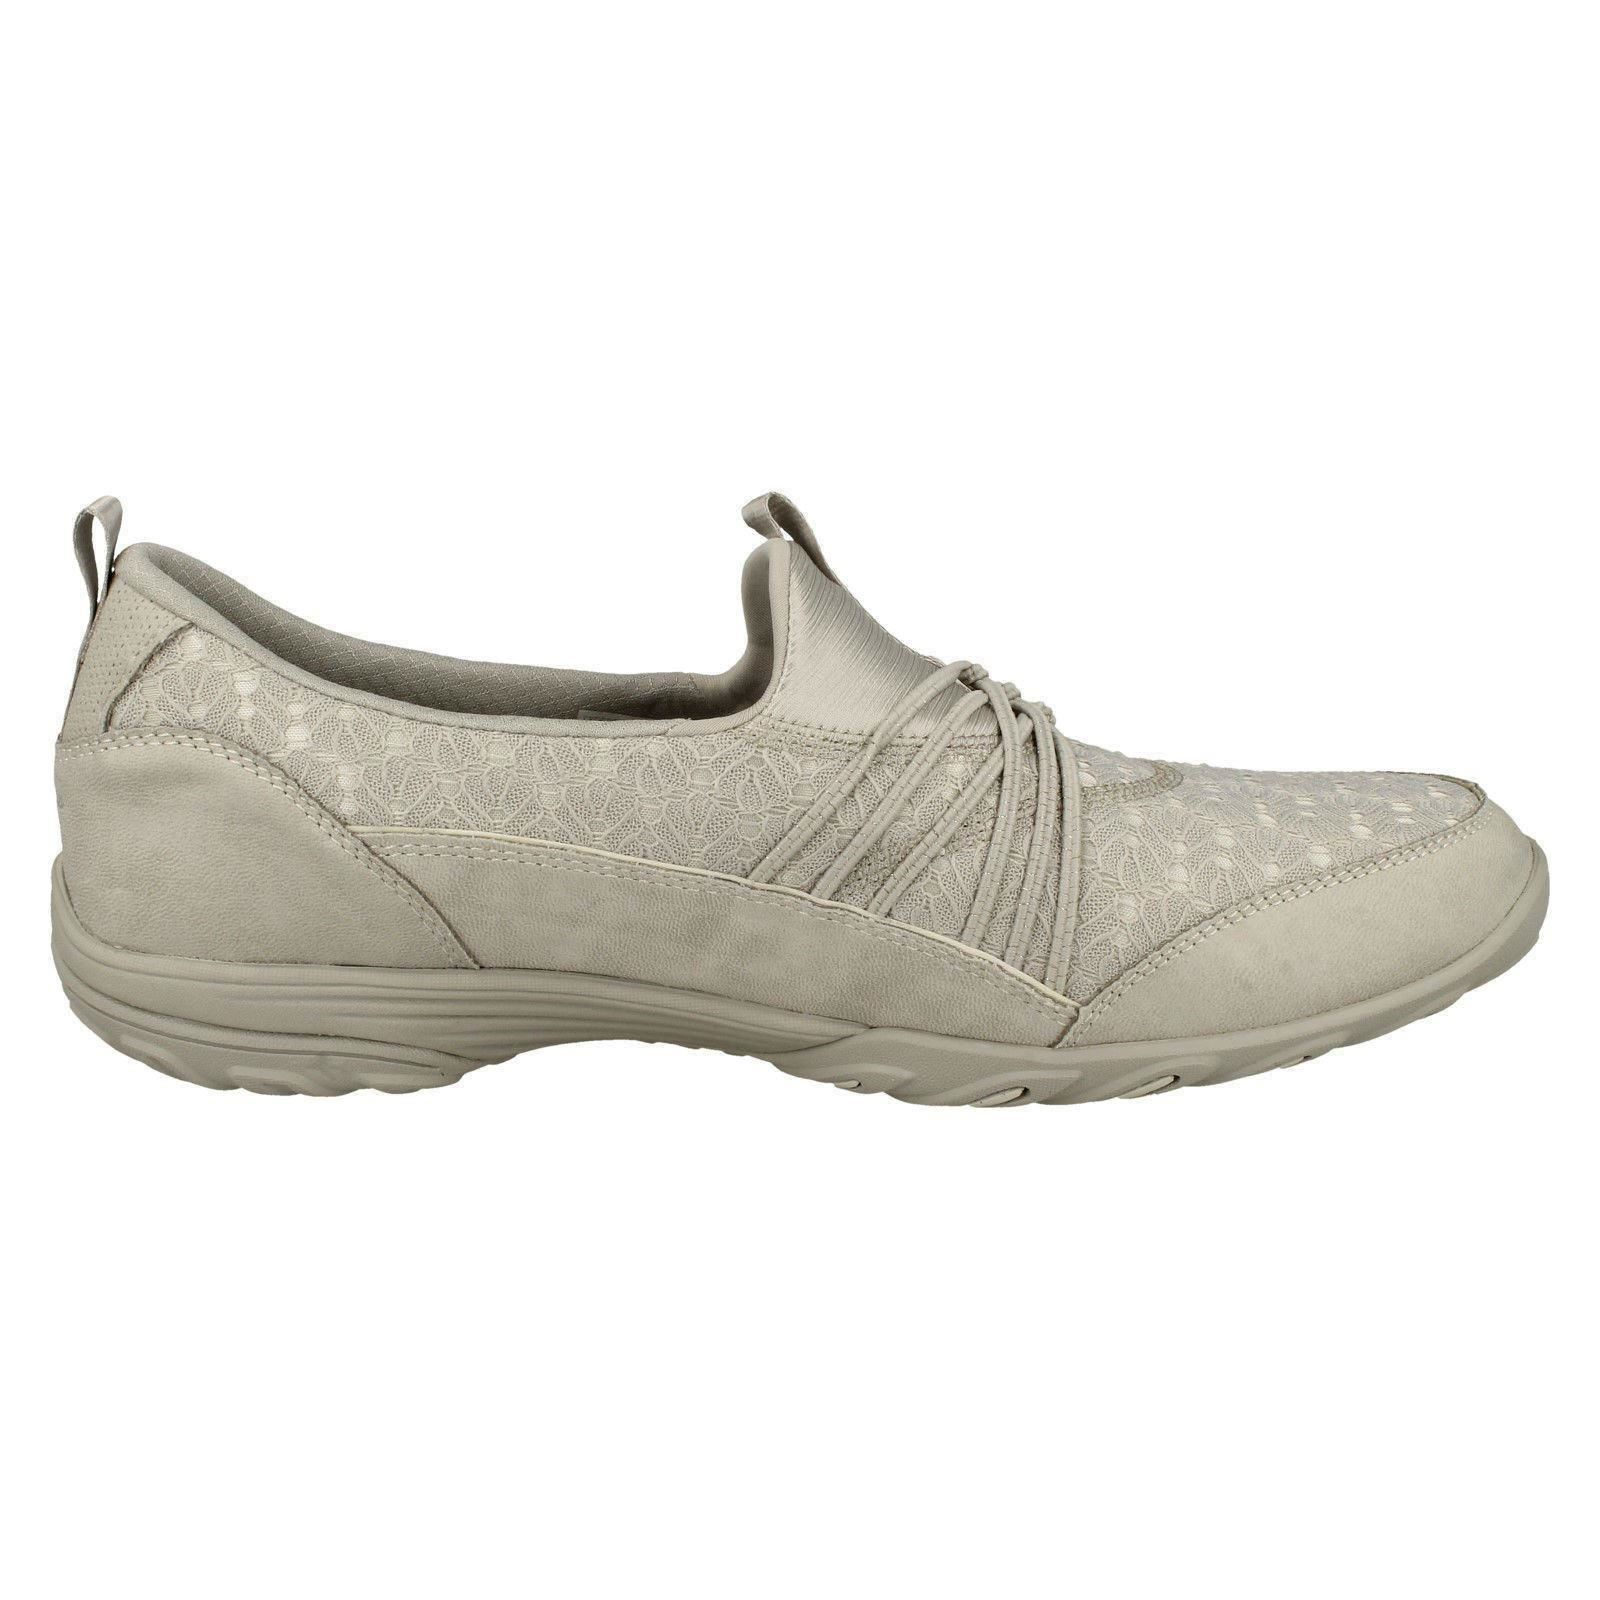 Damenschuhe Awake Skechers Casual-Trainer Wide Awake Damenschuhe d8ebd8